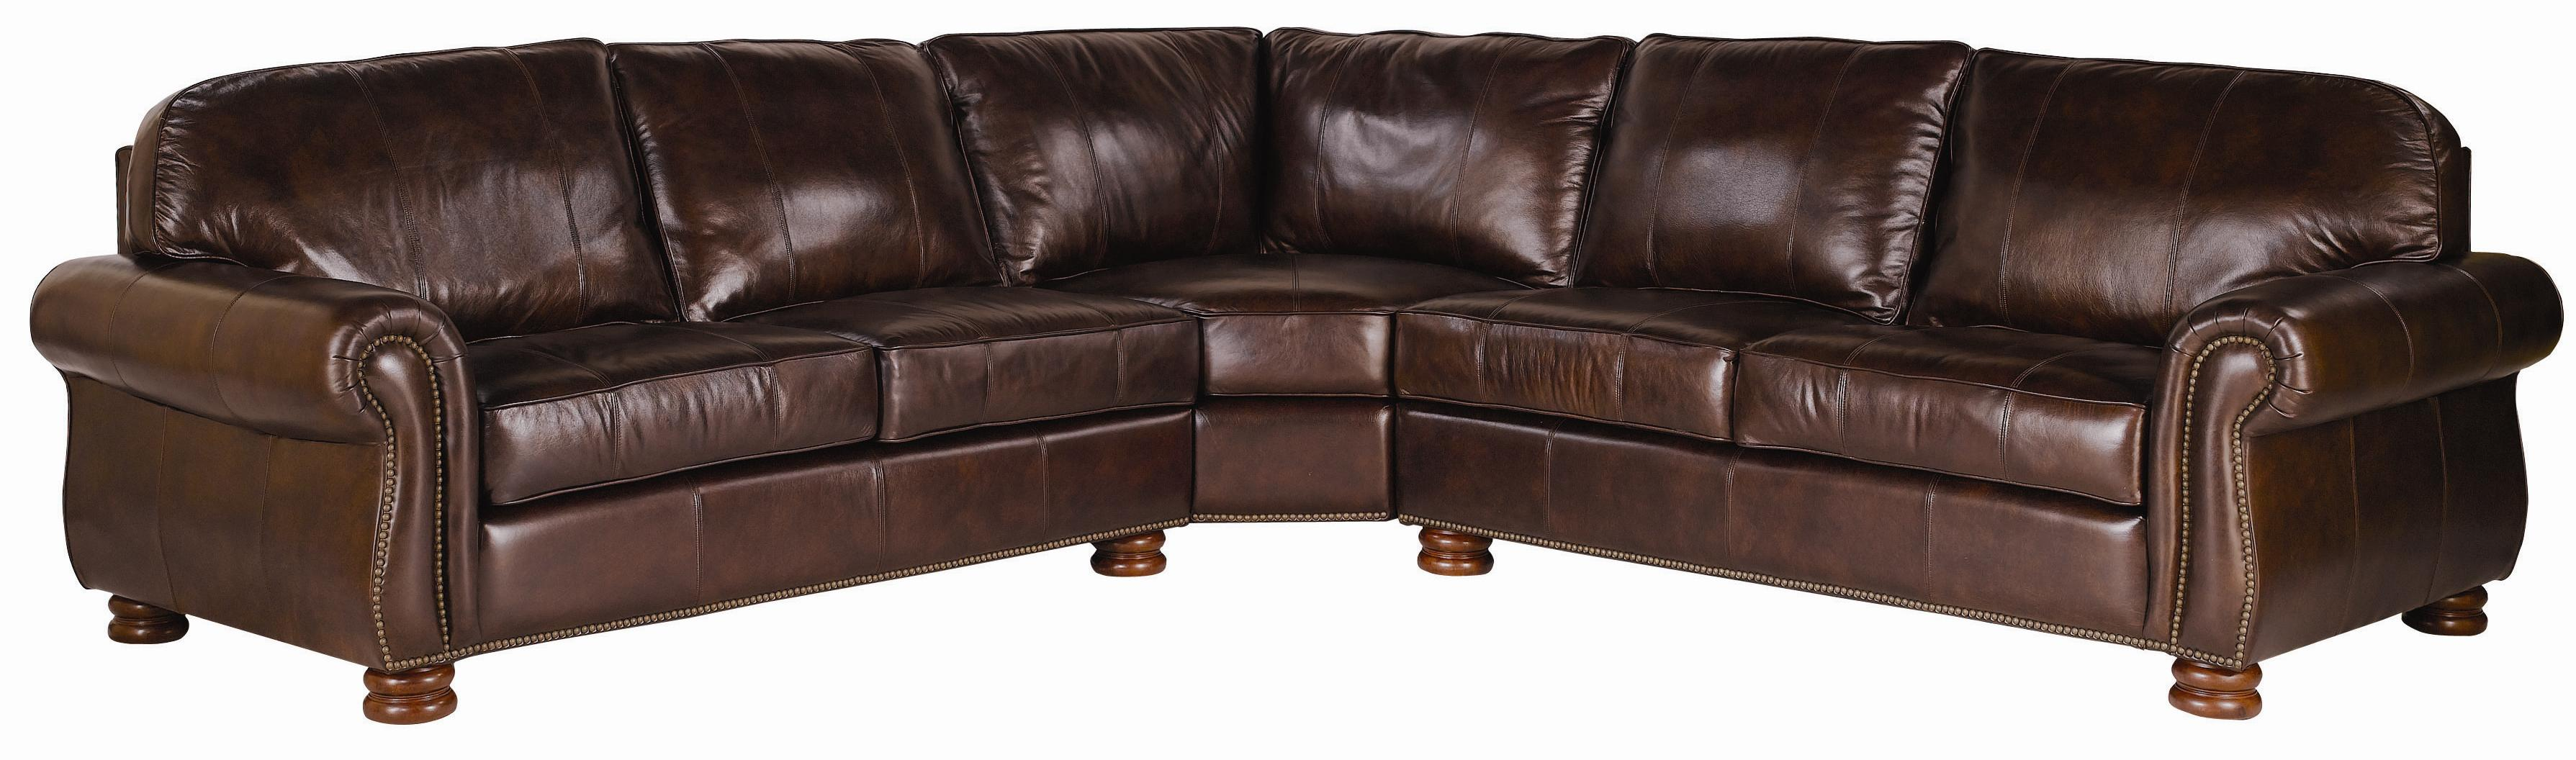 Thomasville Leather Choices Benjamin Leather Select 3 Piece